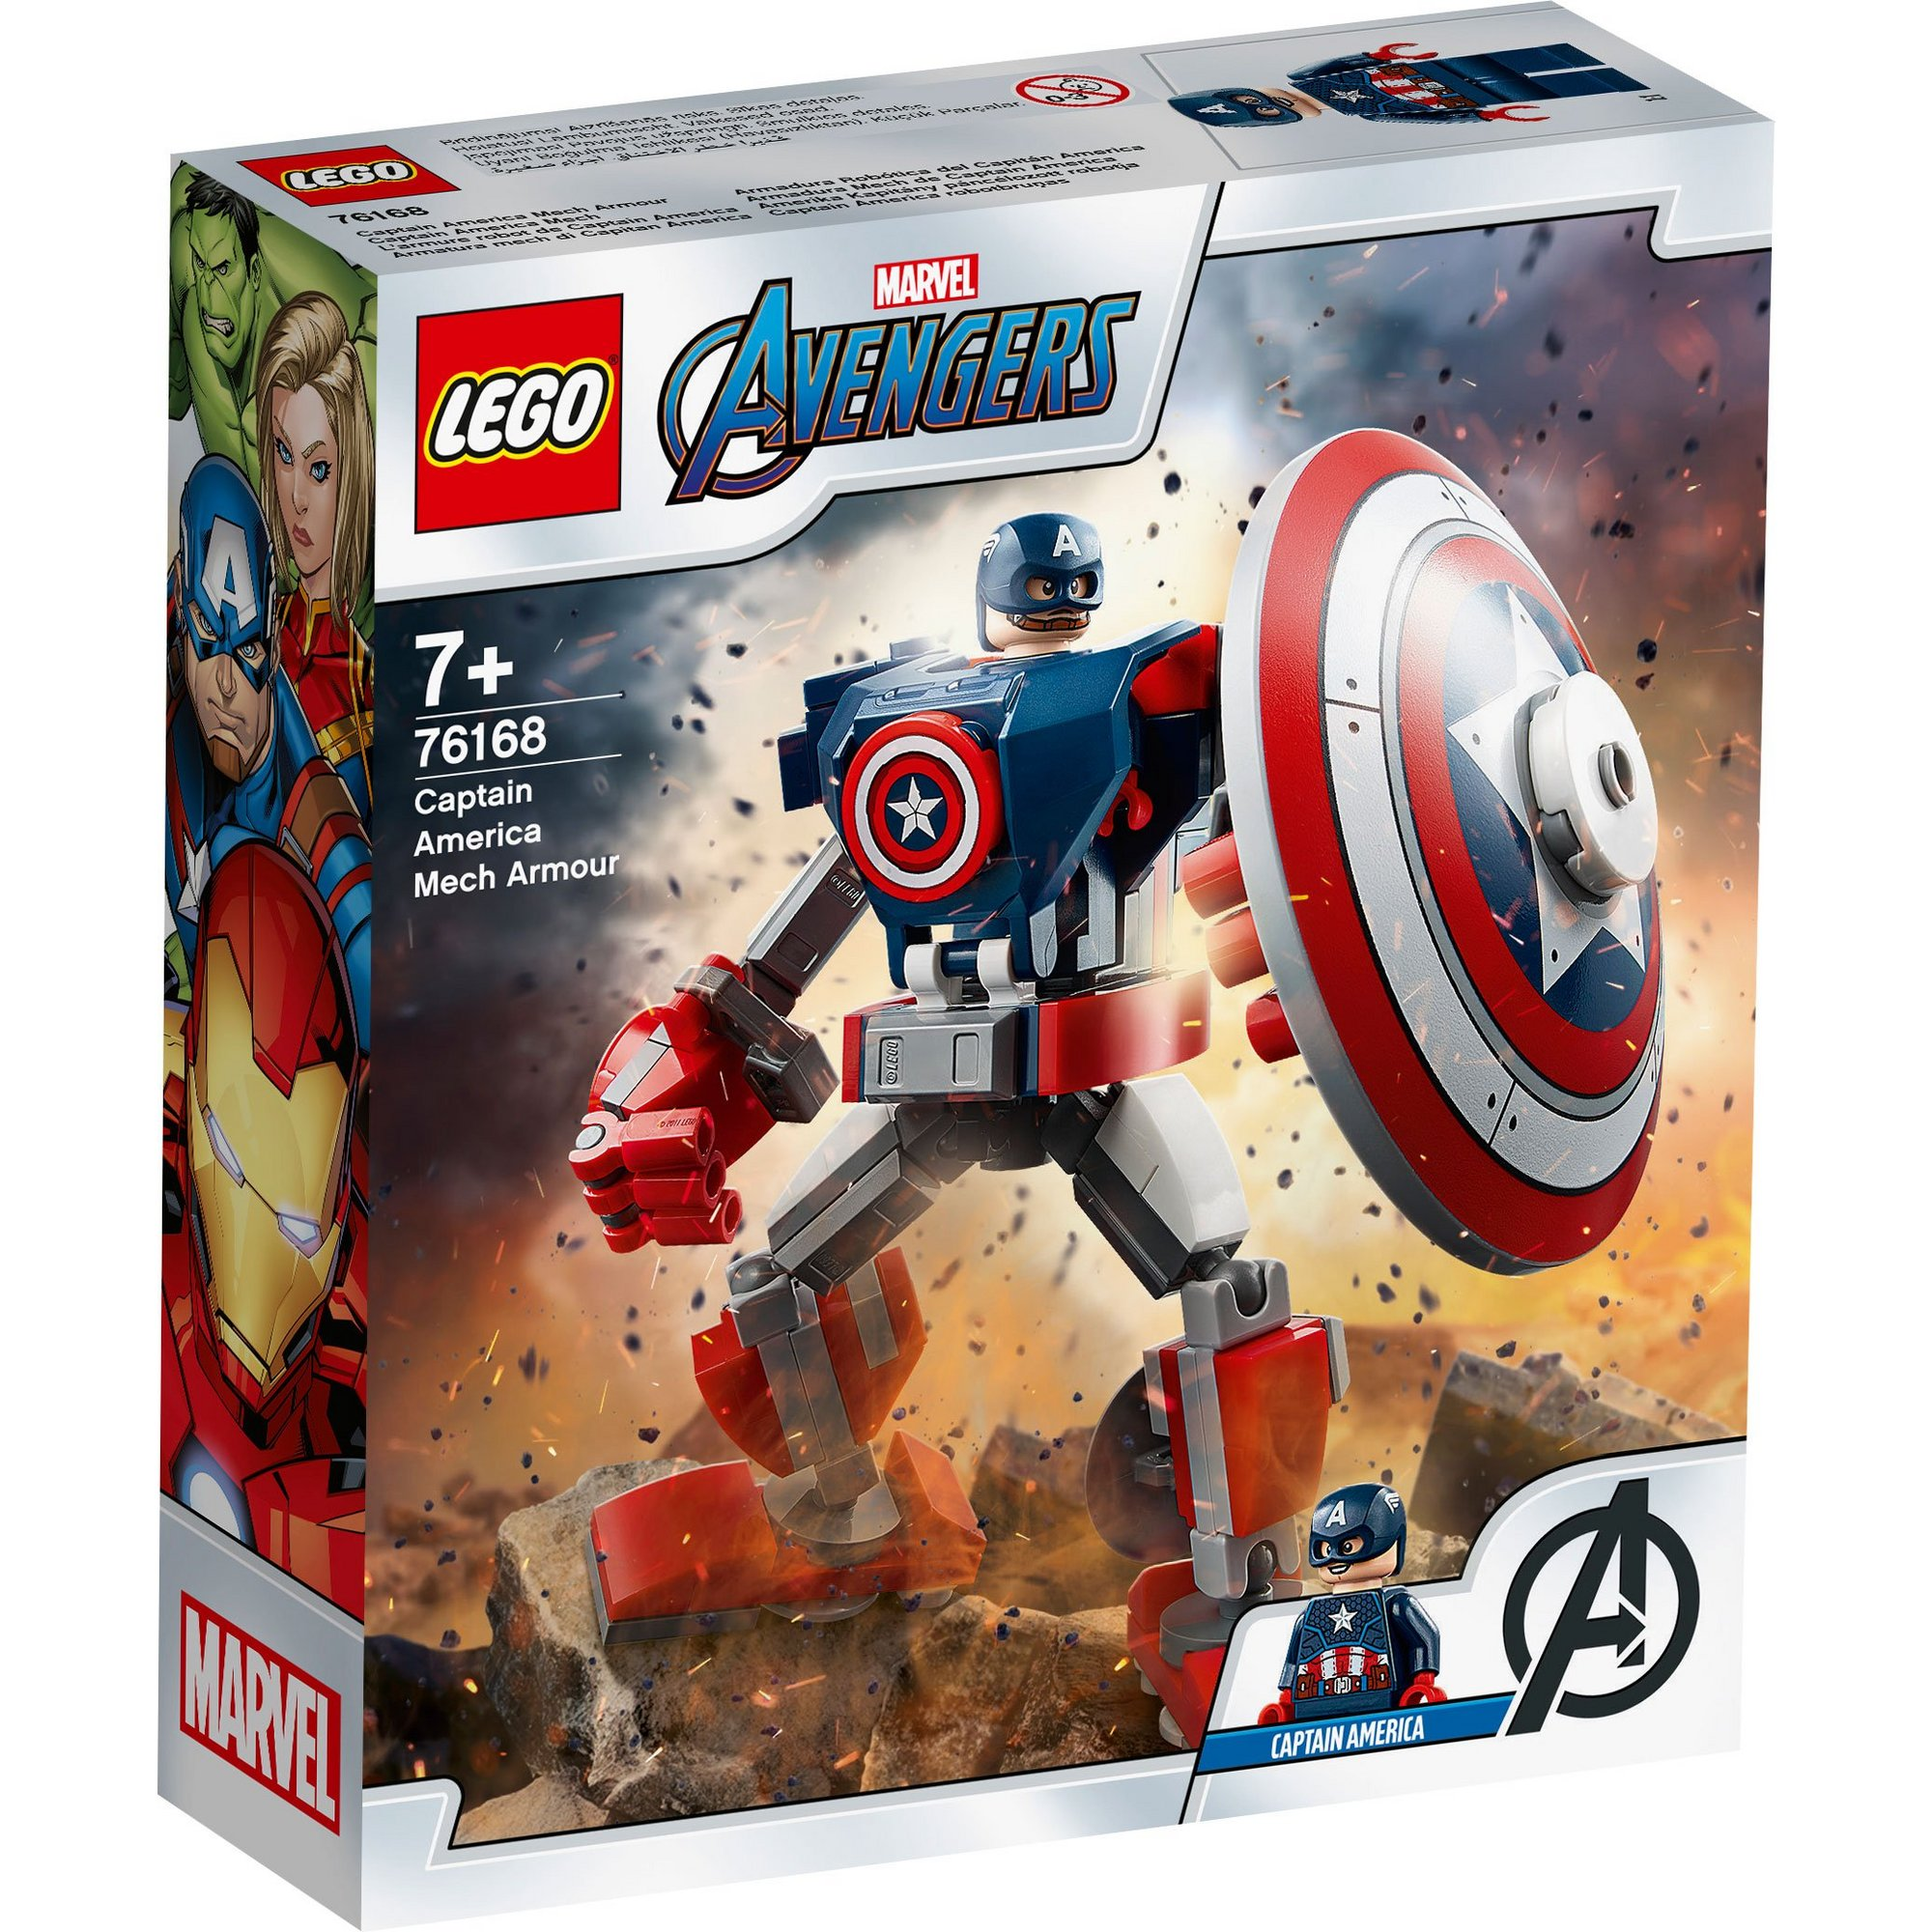 Image of LEGO Super Heroes Captain America Mech Armor